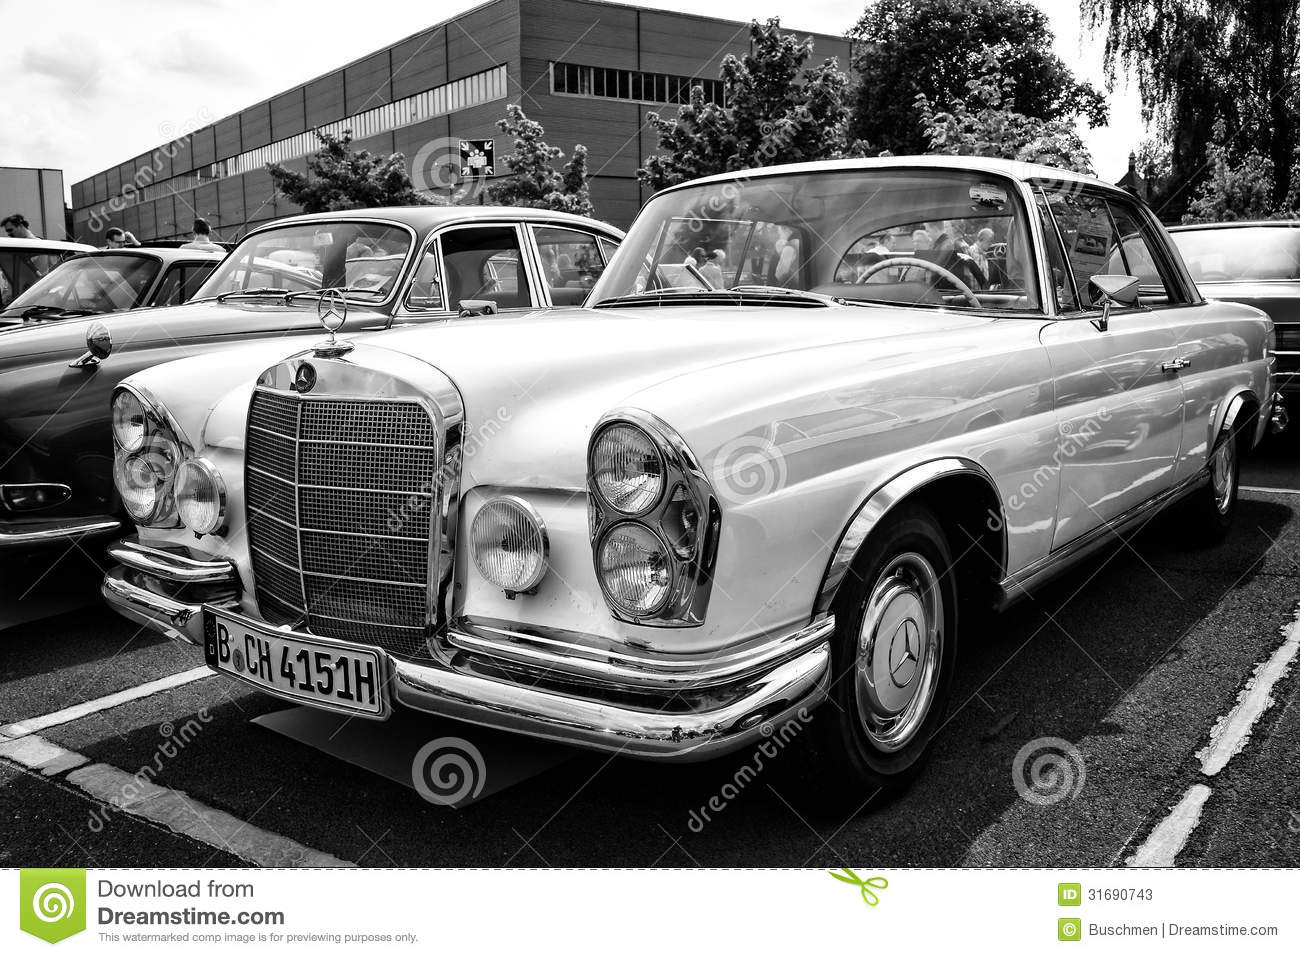 car mercedes benz 280 se w111 coupe editorial stock photo image 31690743. Black Bedroom Furniture Sets. Home Design Ideas